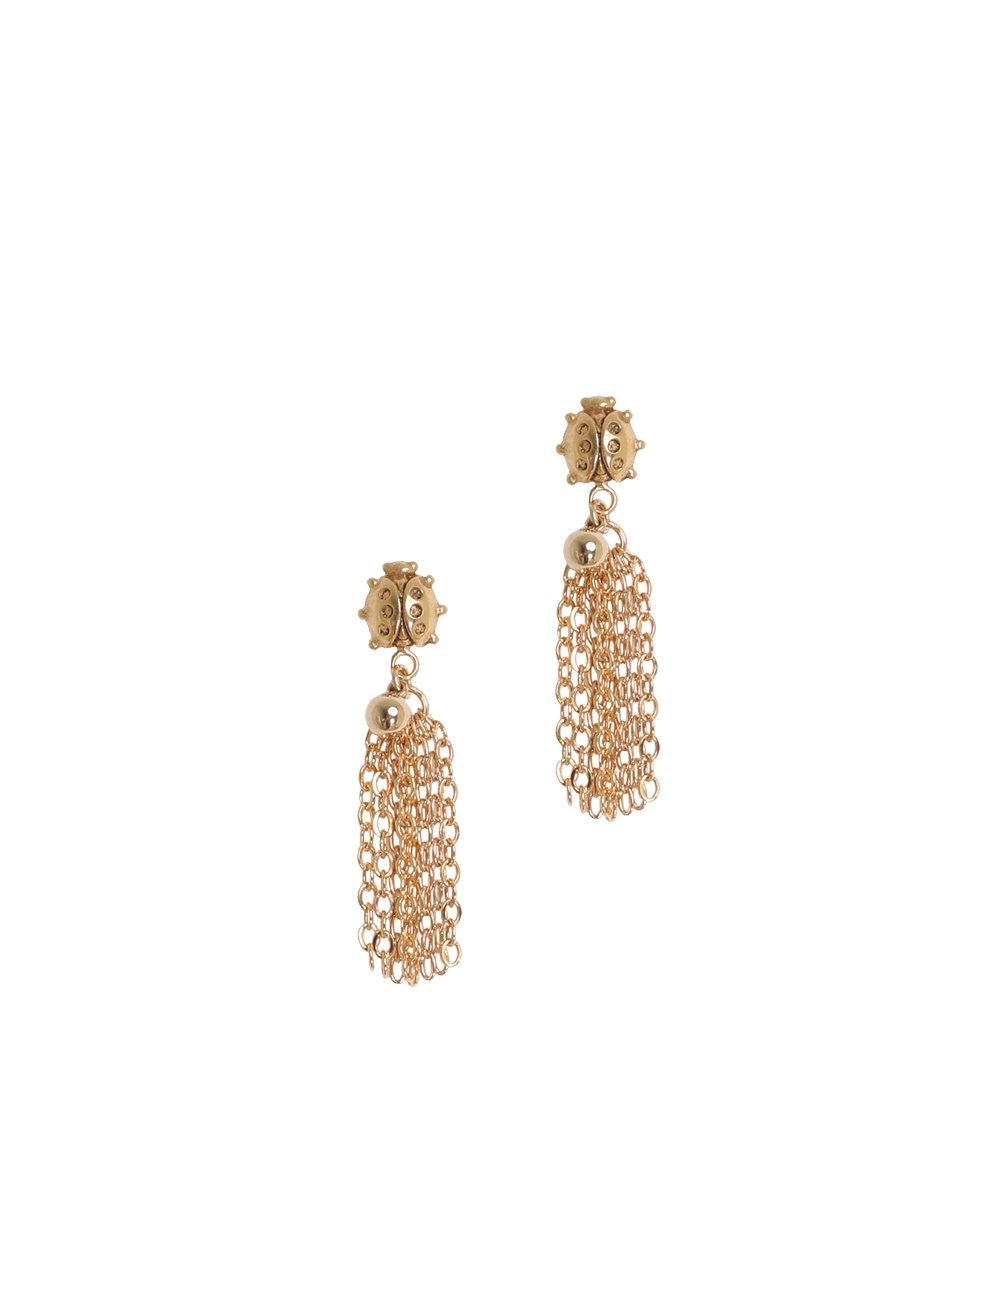 Ladybeetle Tassel Earrings